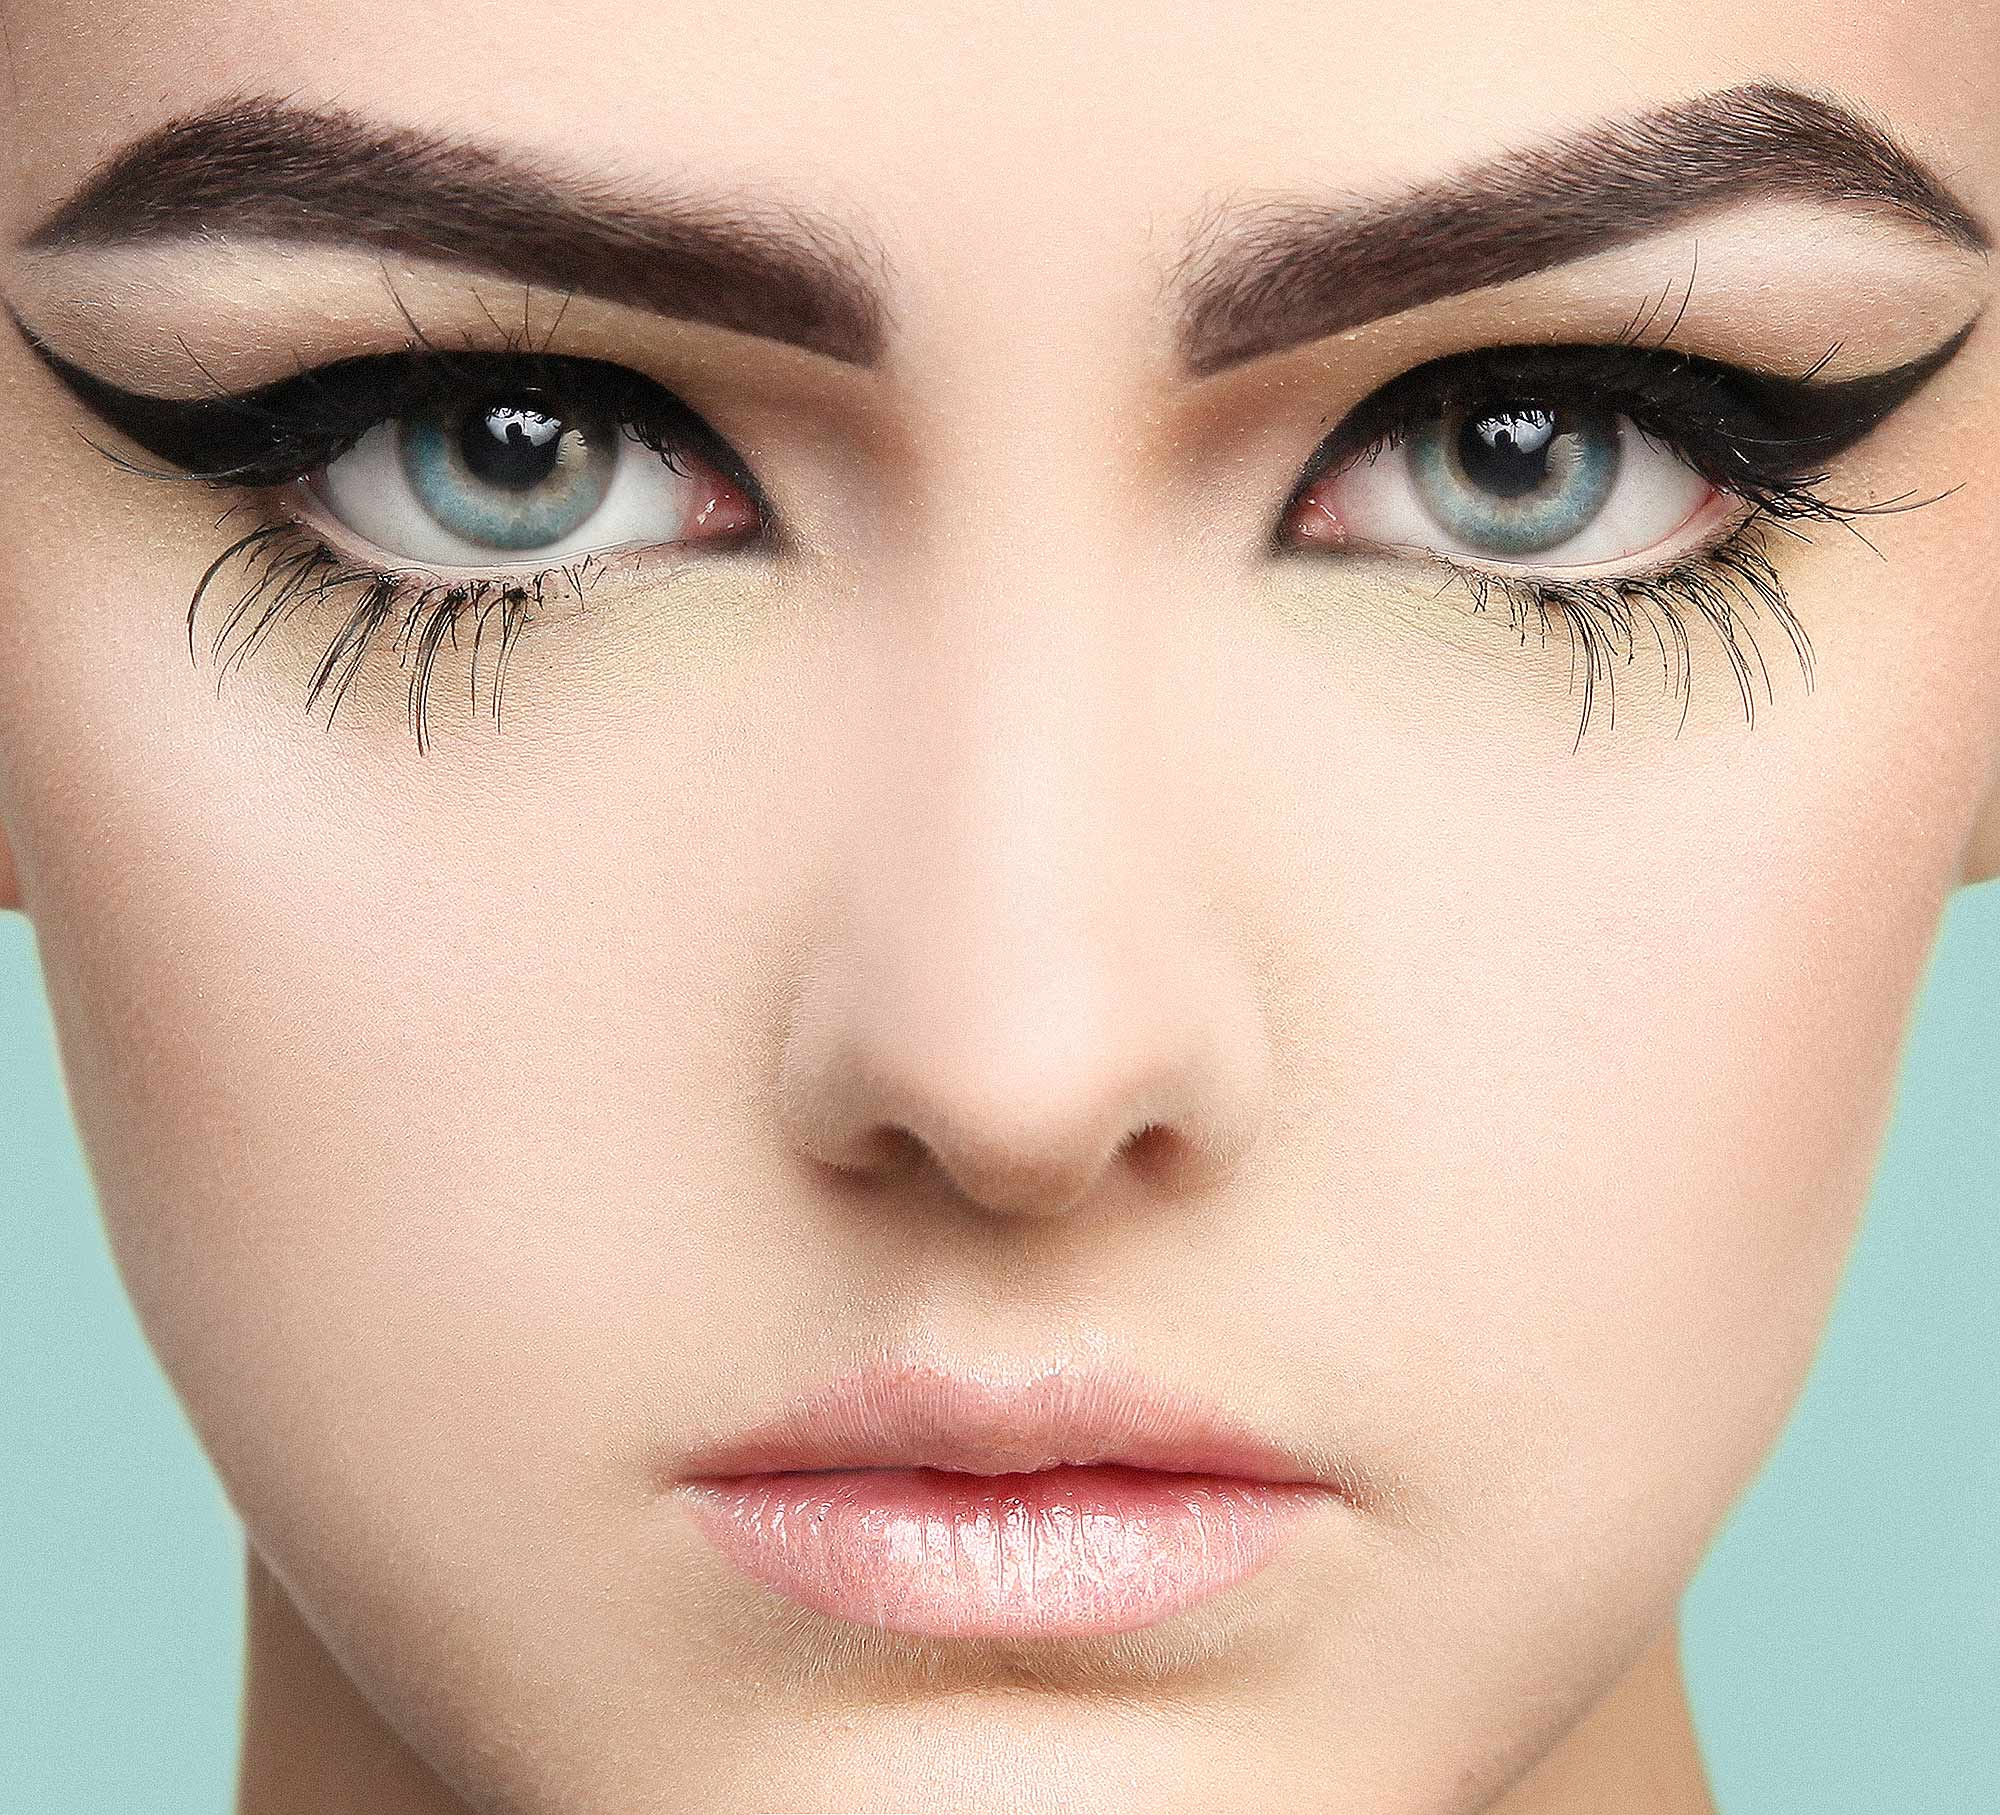 fashion-photography-london-ontario-makeup-florencia-taylor-opus-salon-mirror-awards-contessa-paula-tizzard-face-eyelashes-perfect-brow